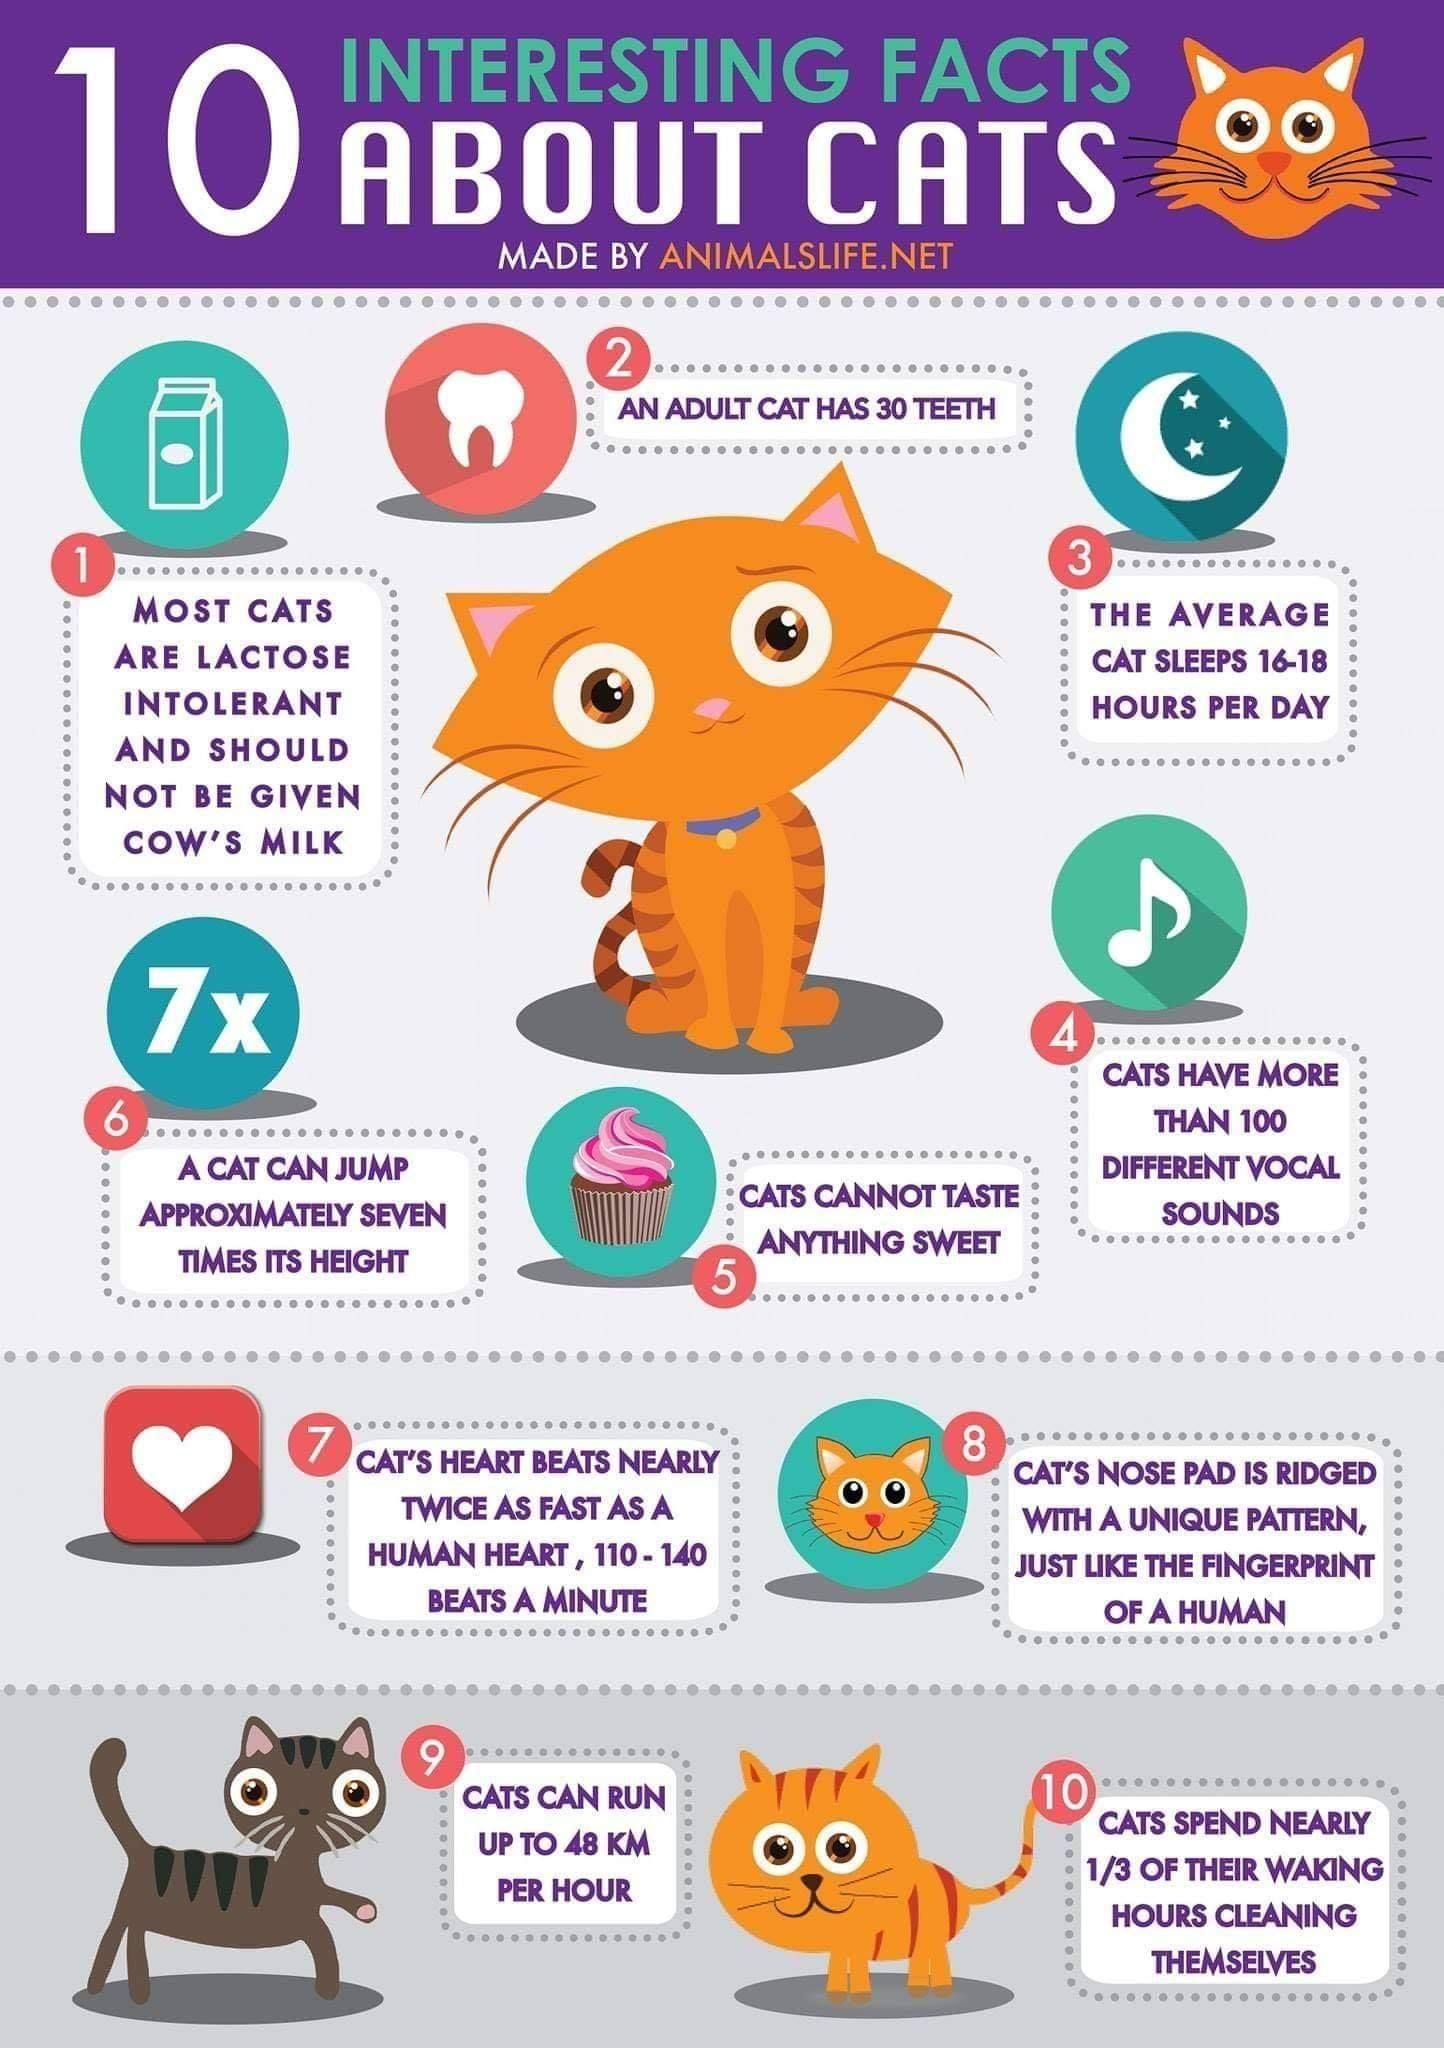 10 interesting facts about cats Cat facts, Fun facts